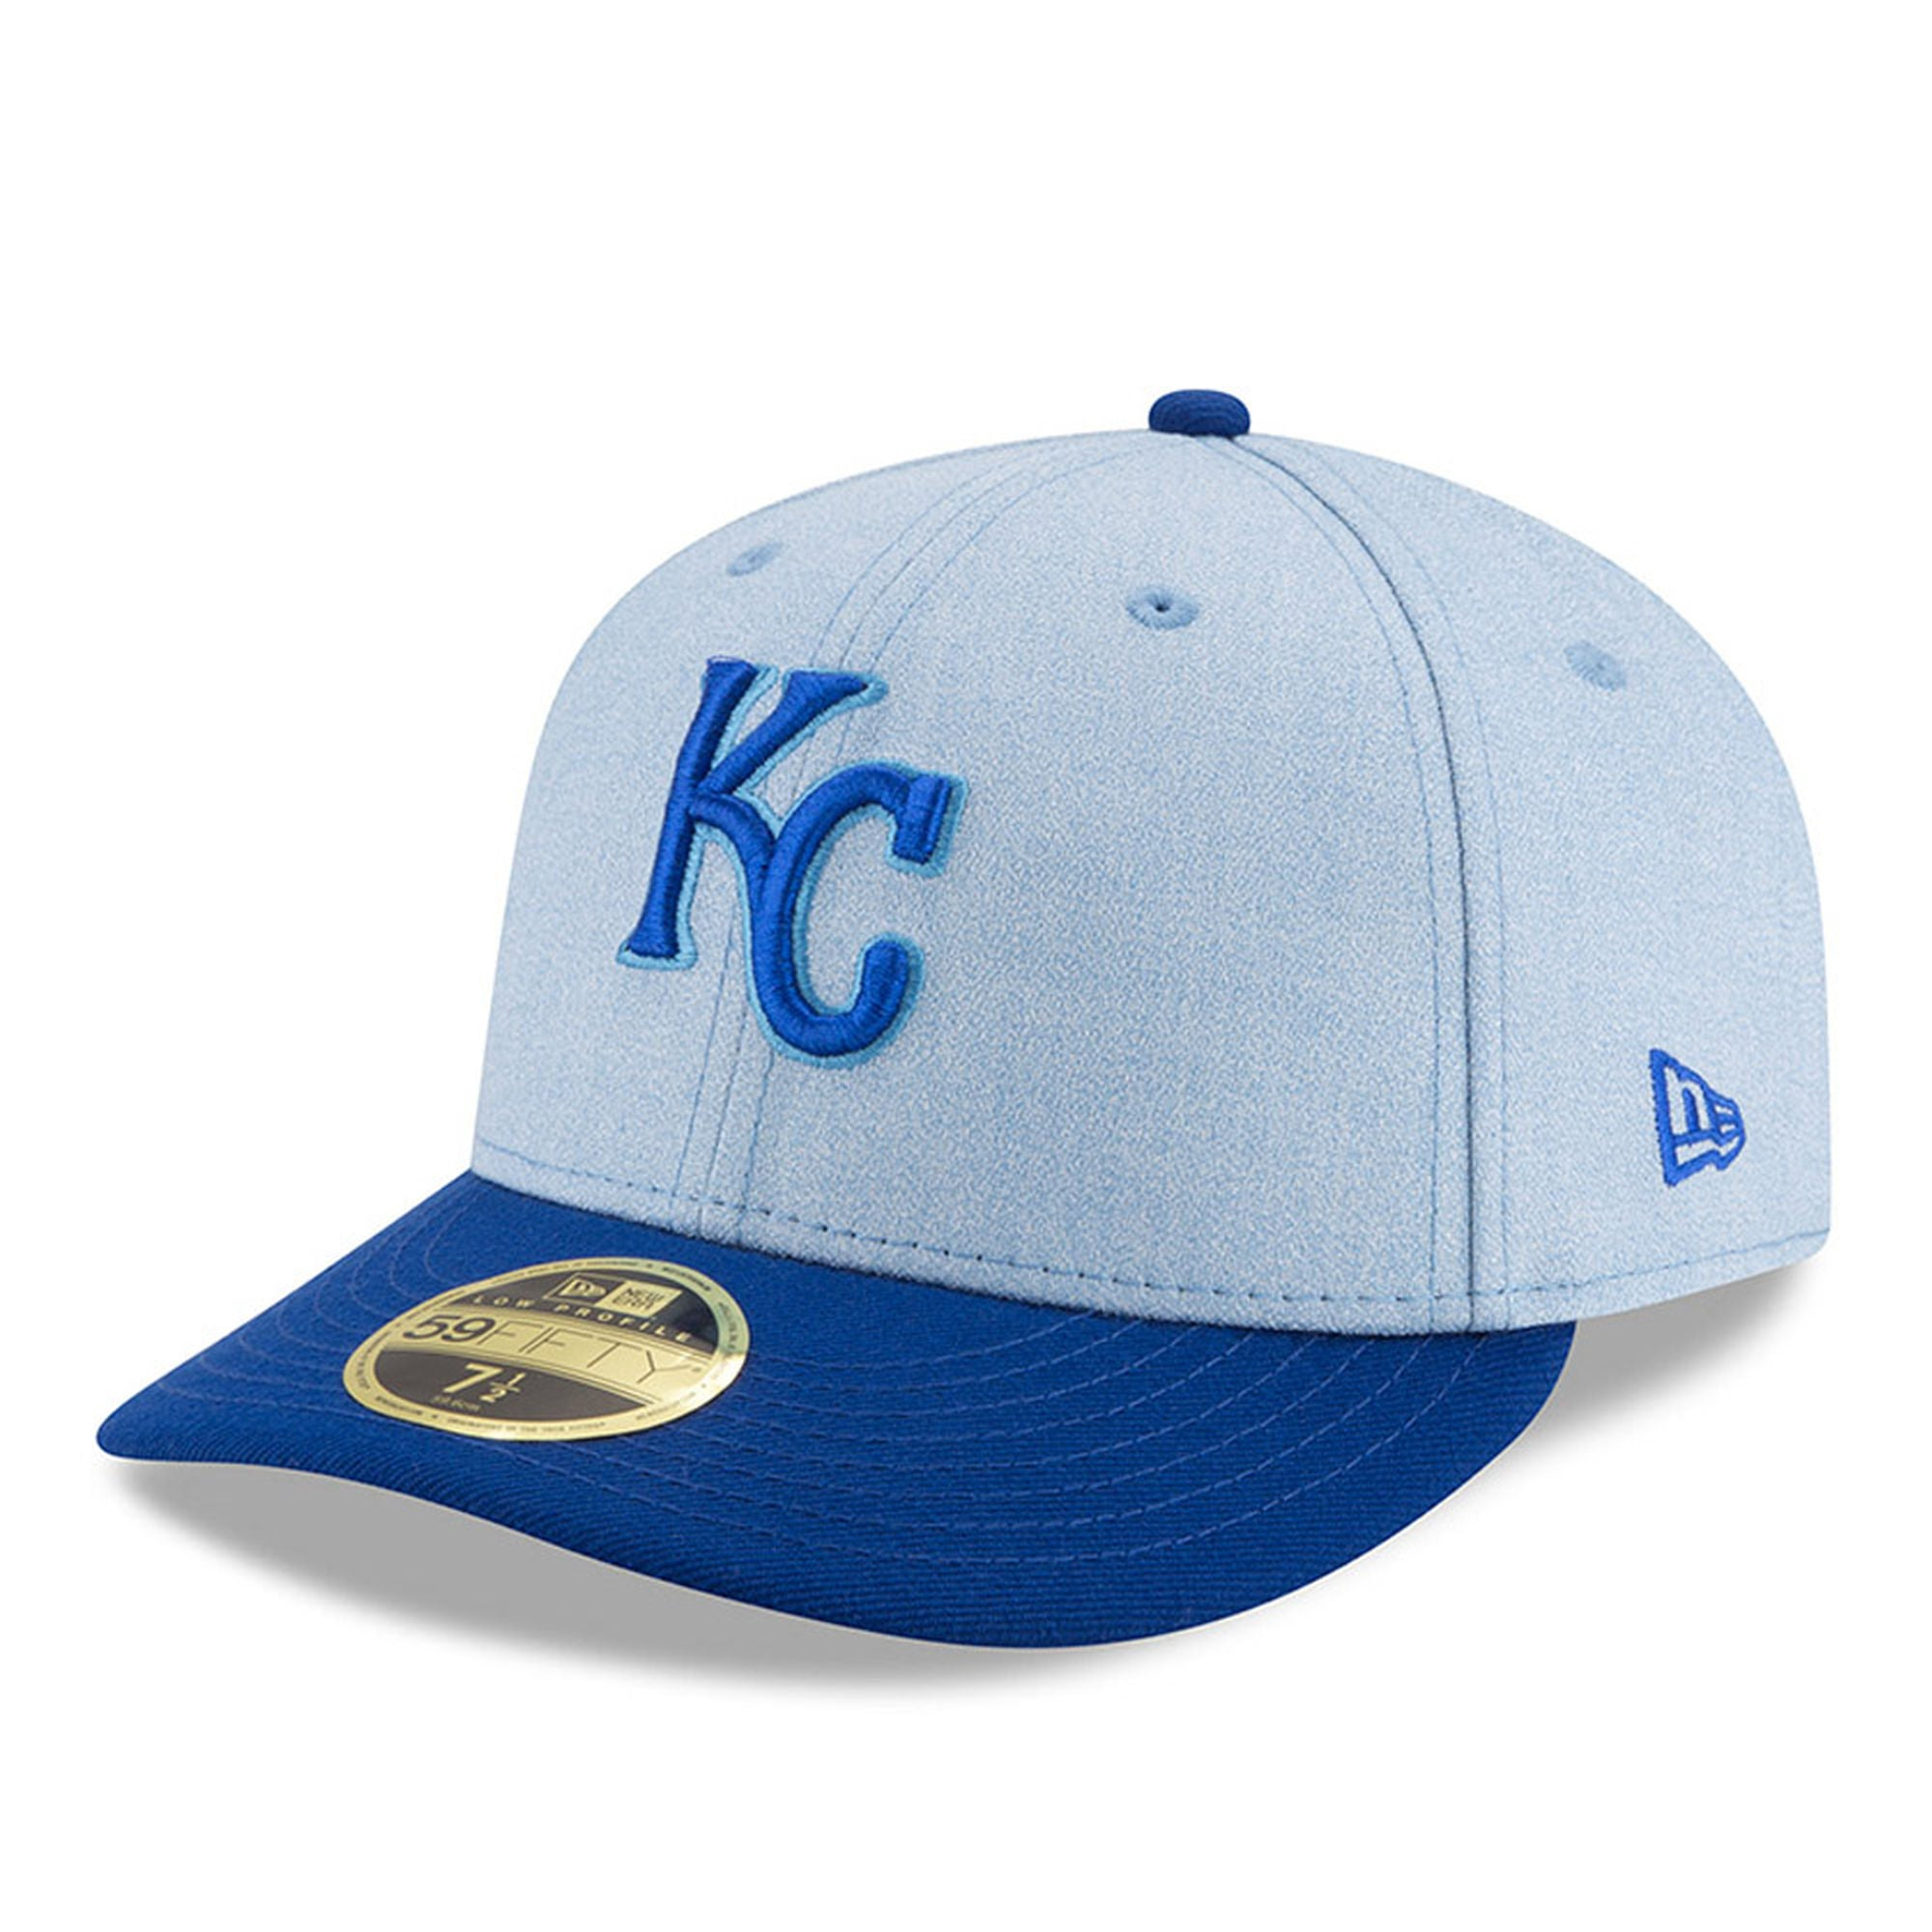 c6365b04 Kansas City Royals Fathers Day 59FIFTY Low Profile Fitted Hat by New Era